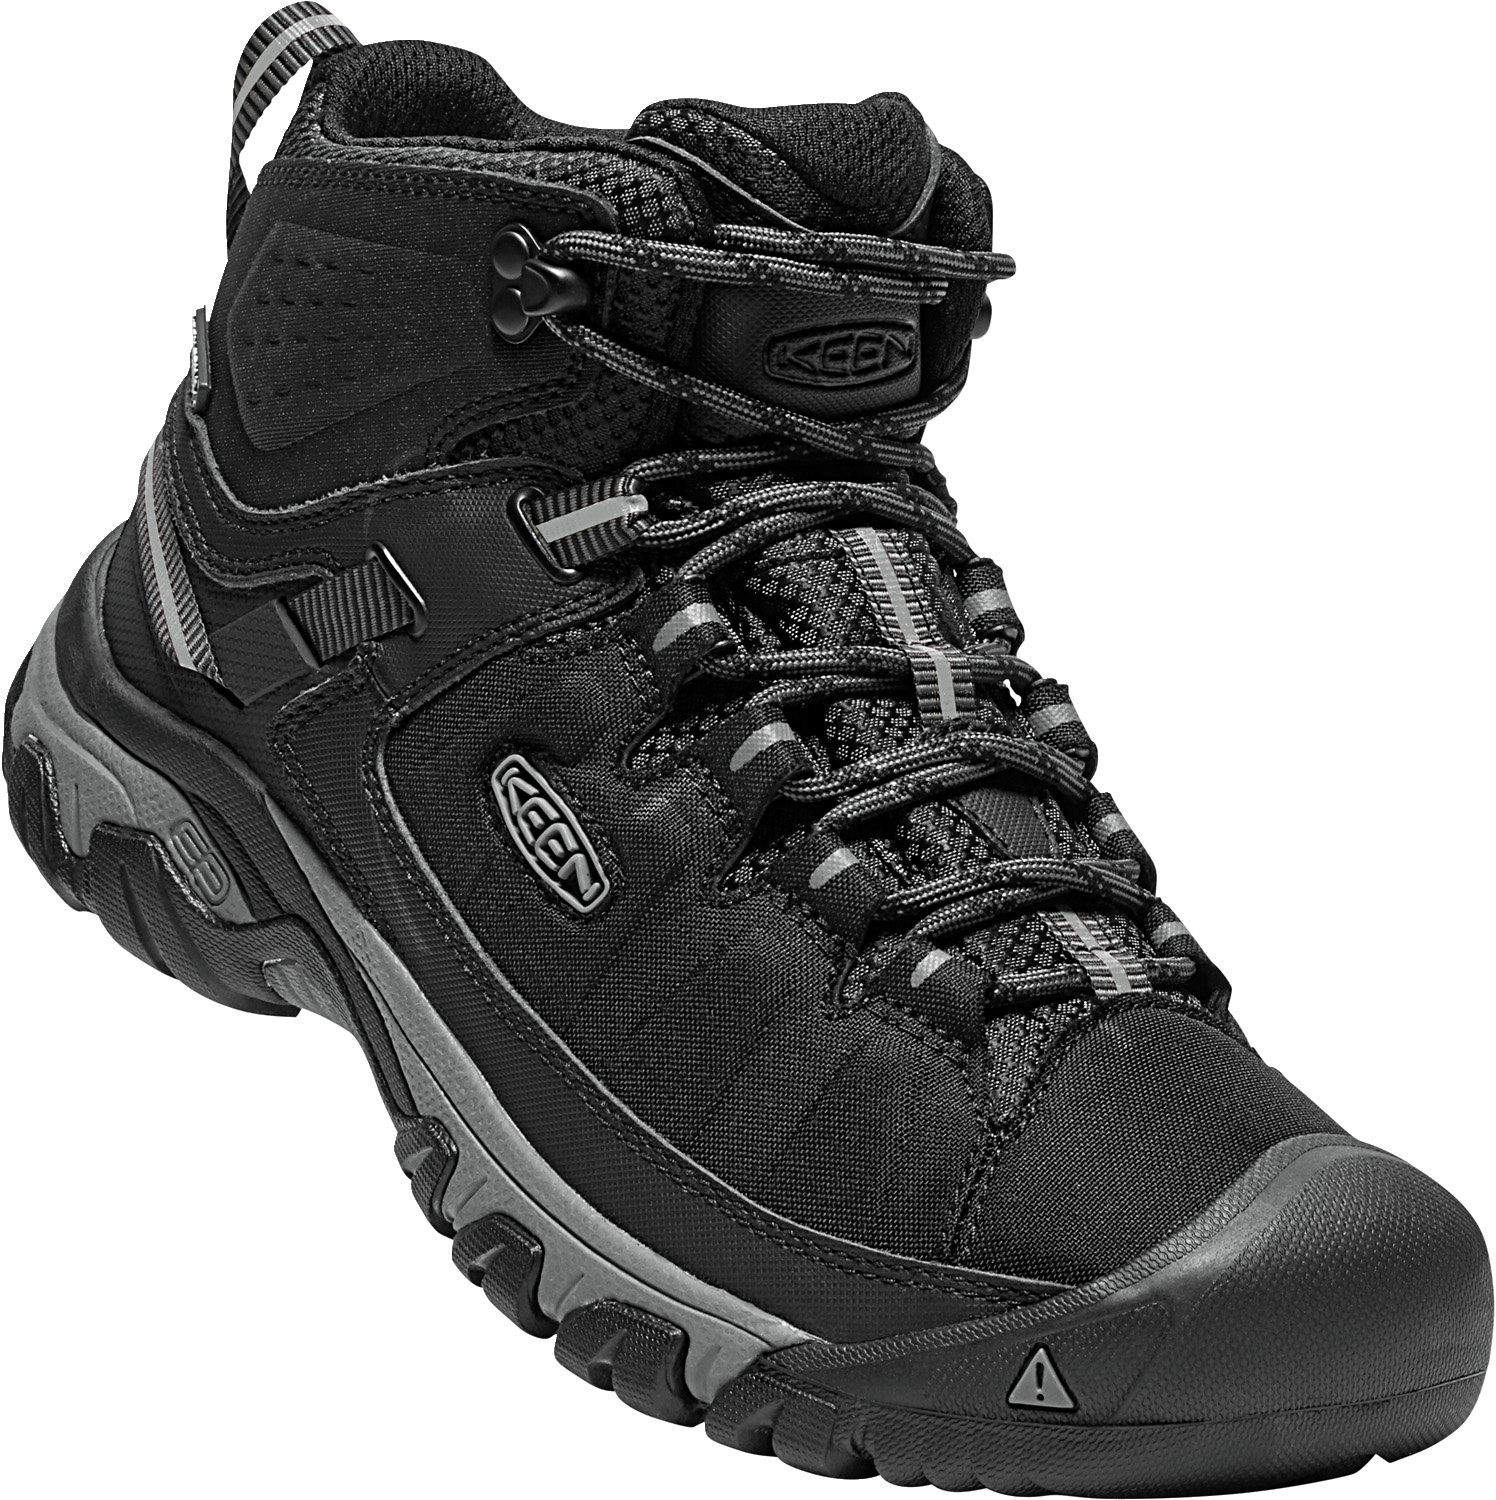 KEEN MENS TARGHEE EXP MID WP BLACK/STEEL GREY SHOE